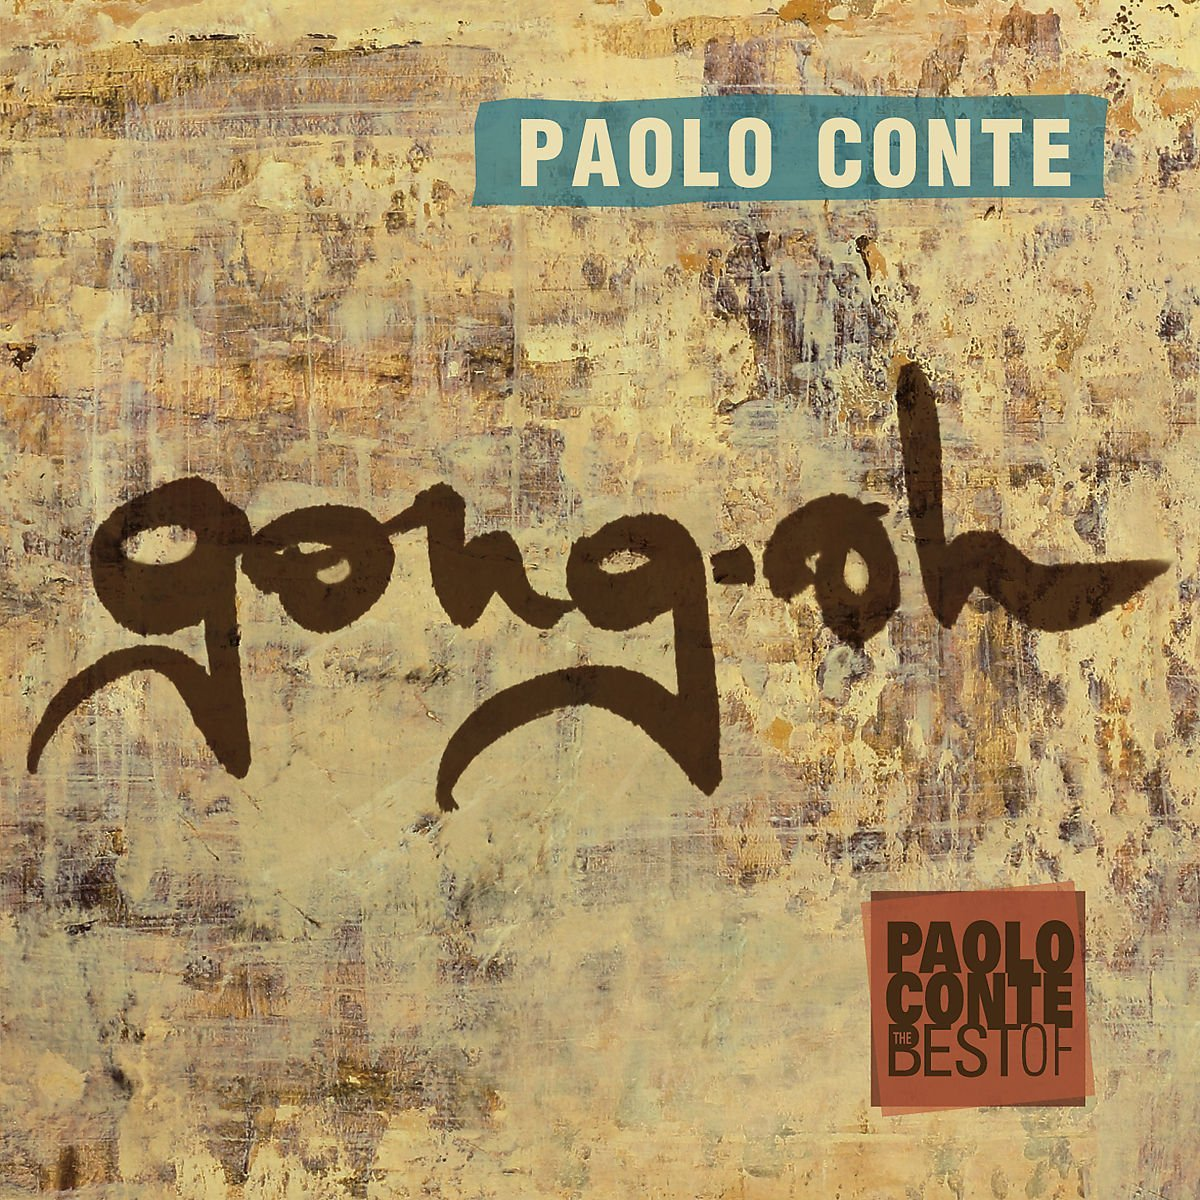 Paolo Conte - Gong-oh